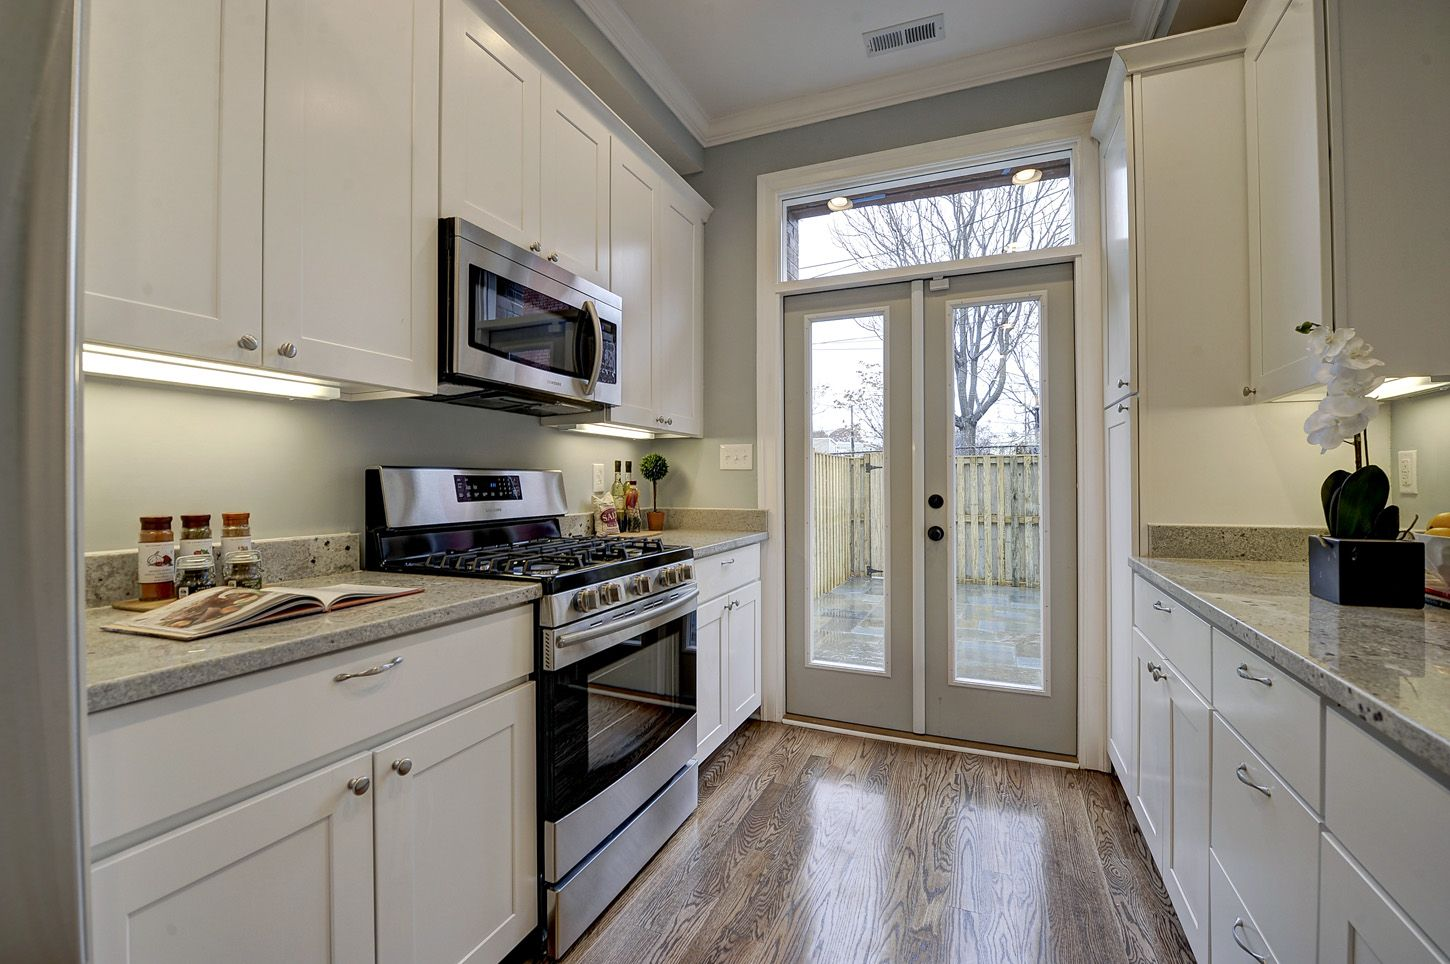 Galley Kitchen Patio Doors Hardwood Floors White Cabinets Stone